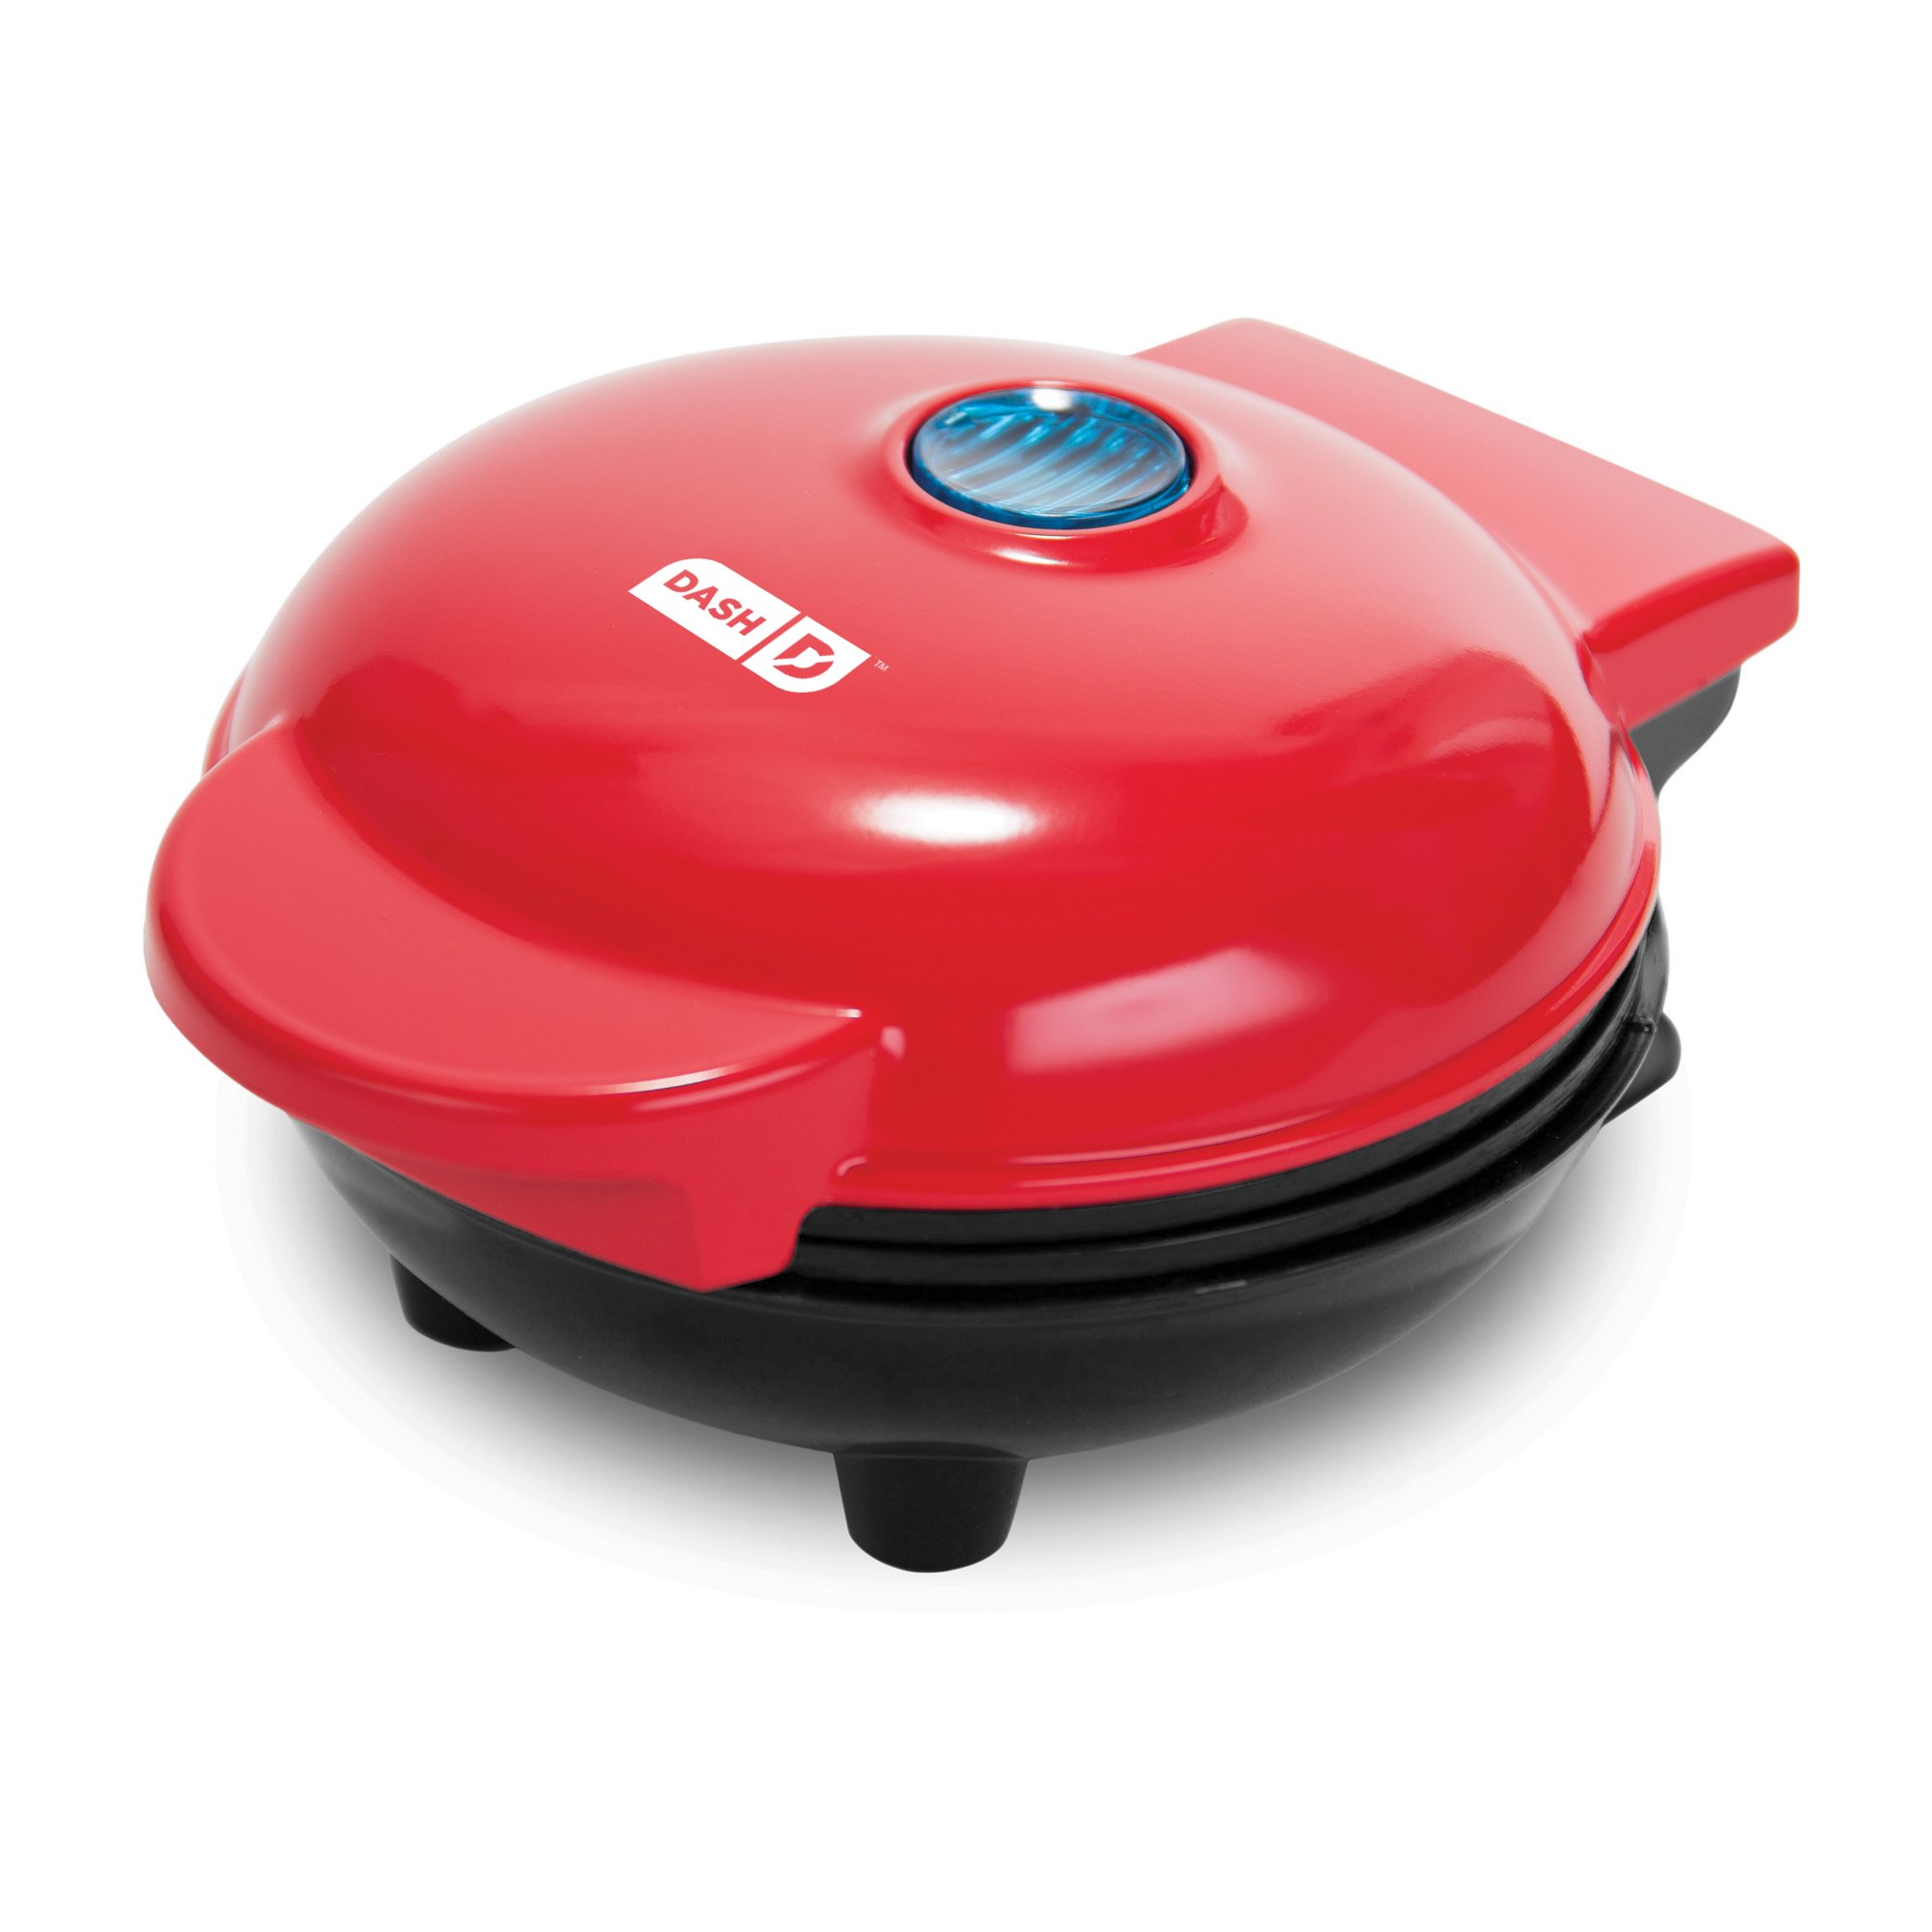 Dash Mini Maker: The Mini Waffle Maker Machine for Individual Waffles, Paninis, Hash browns, other on the go Breakfast, Lunch, or Snacks - Red